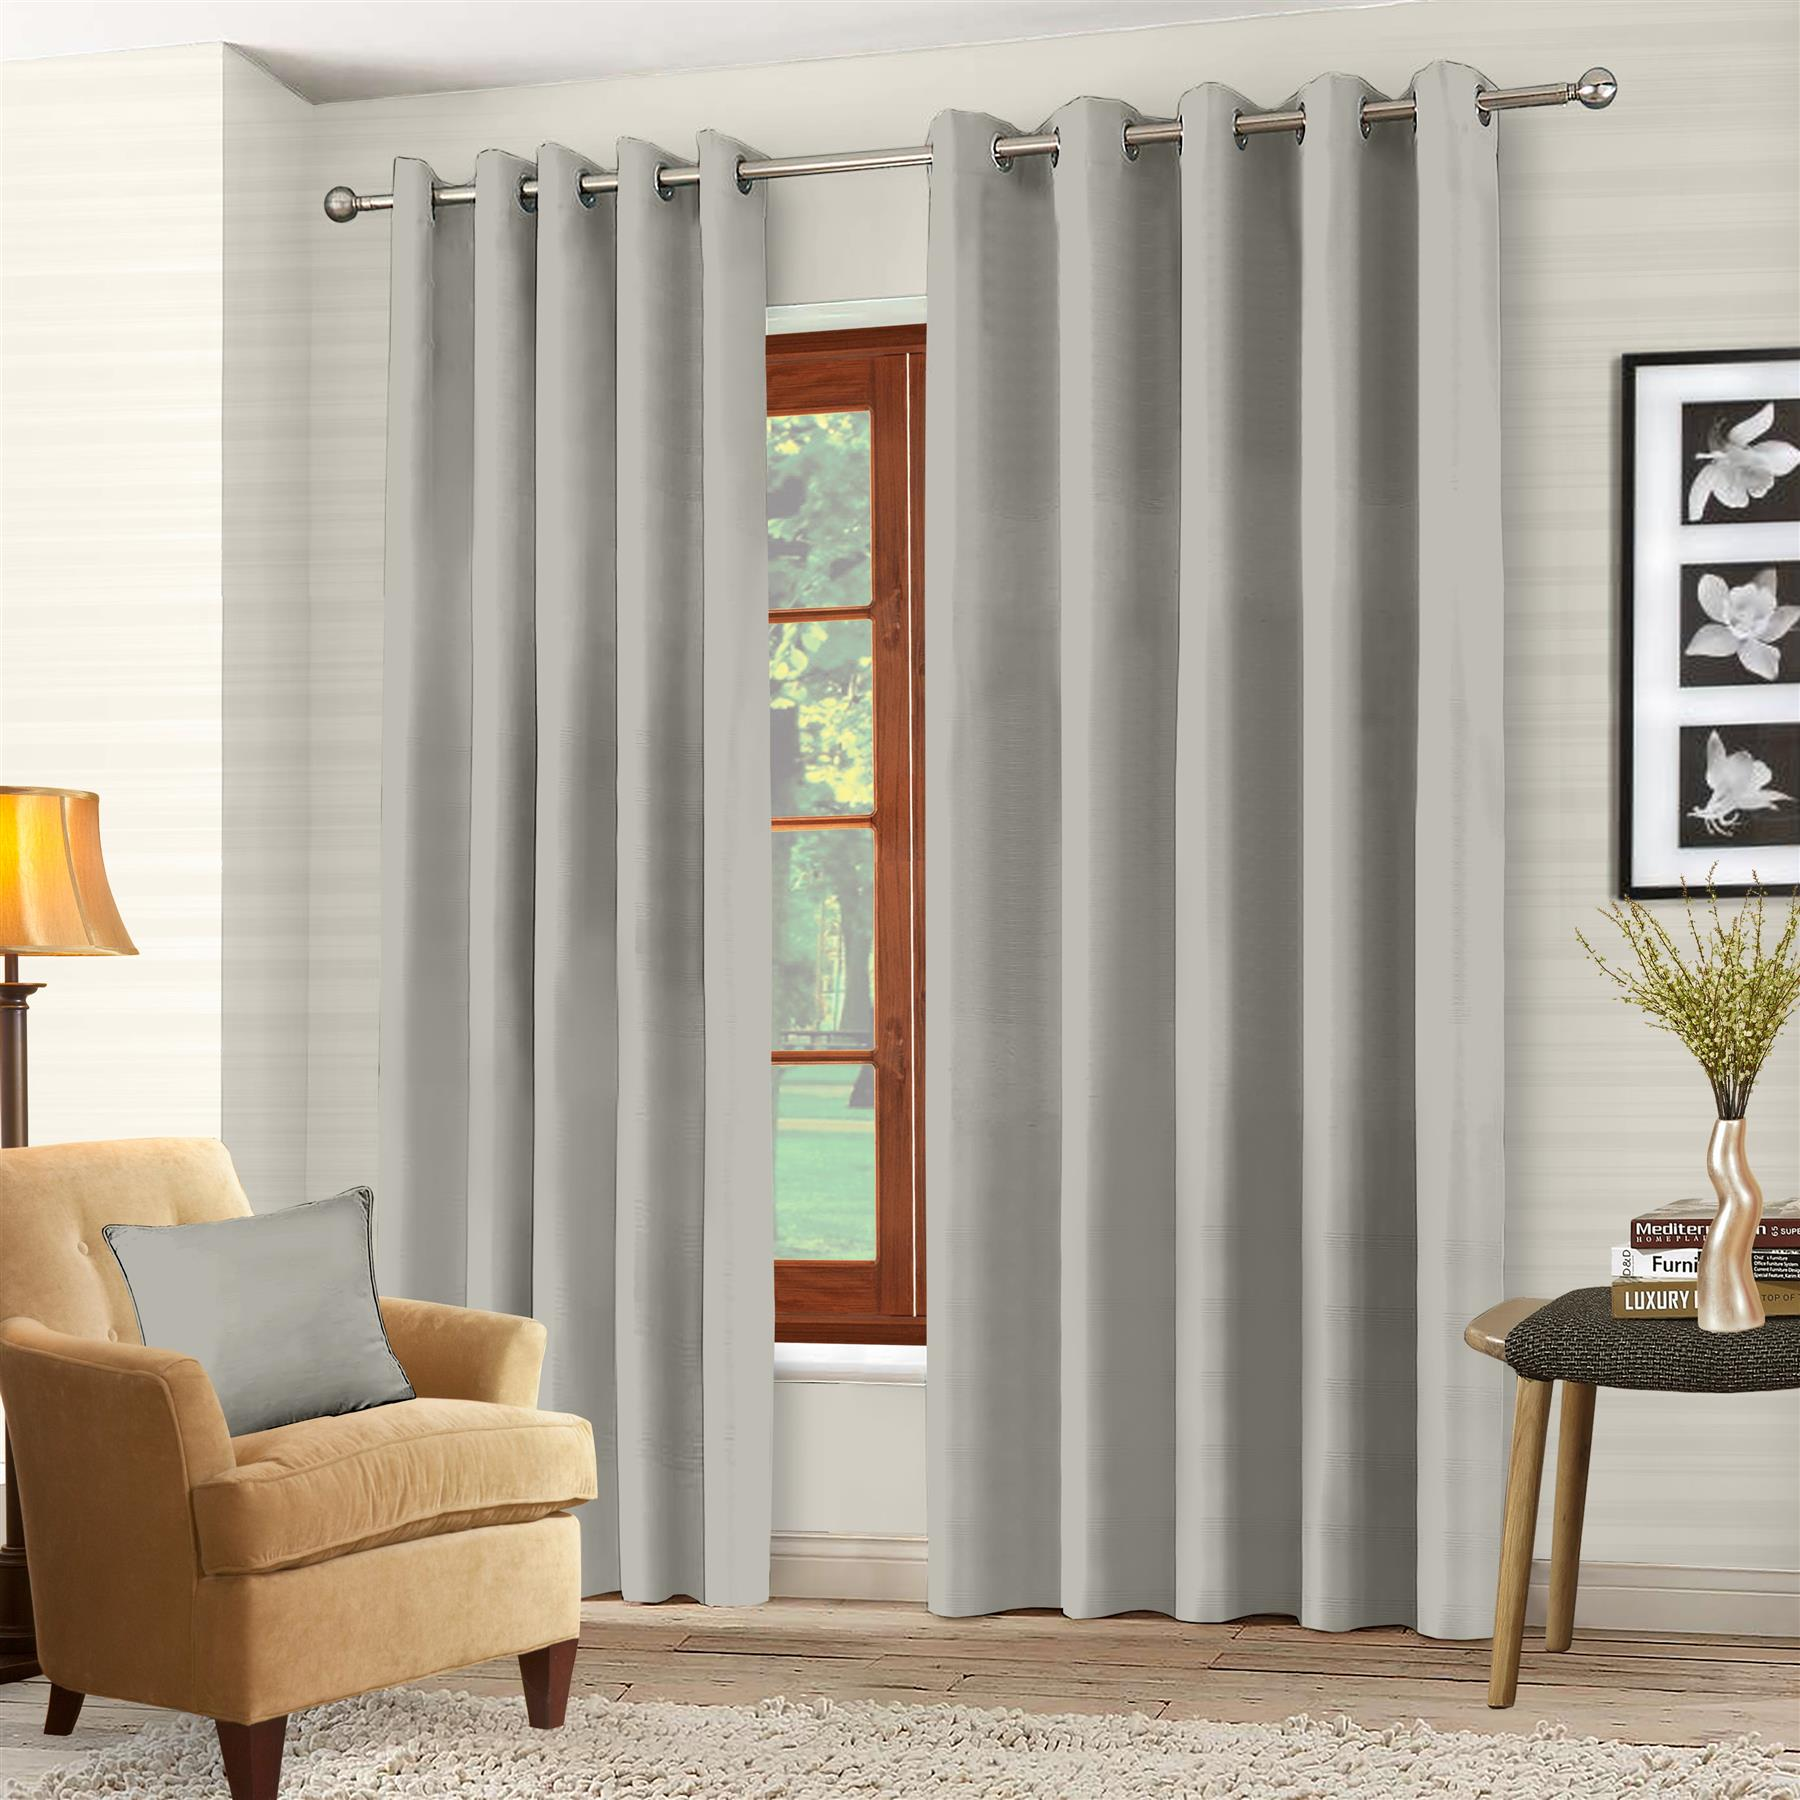 Luxury-Thermal-Blackout-Eyelet-Ring-Top-Curtains-Pair-with-tie-backs thumbnail 48